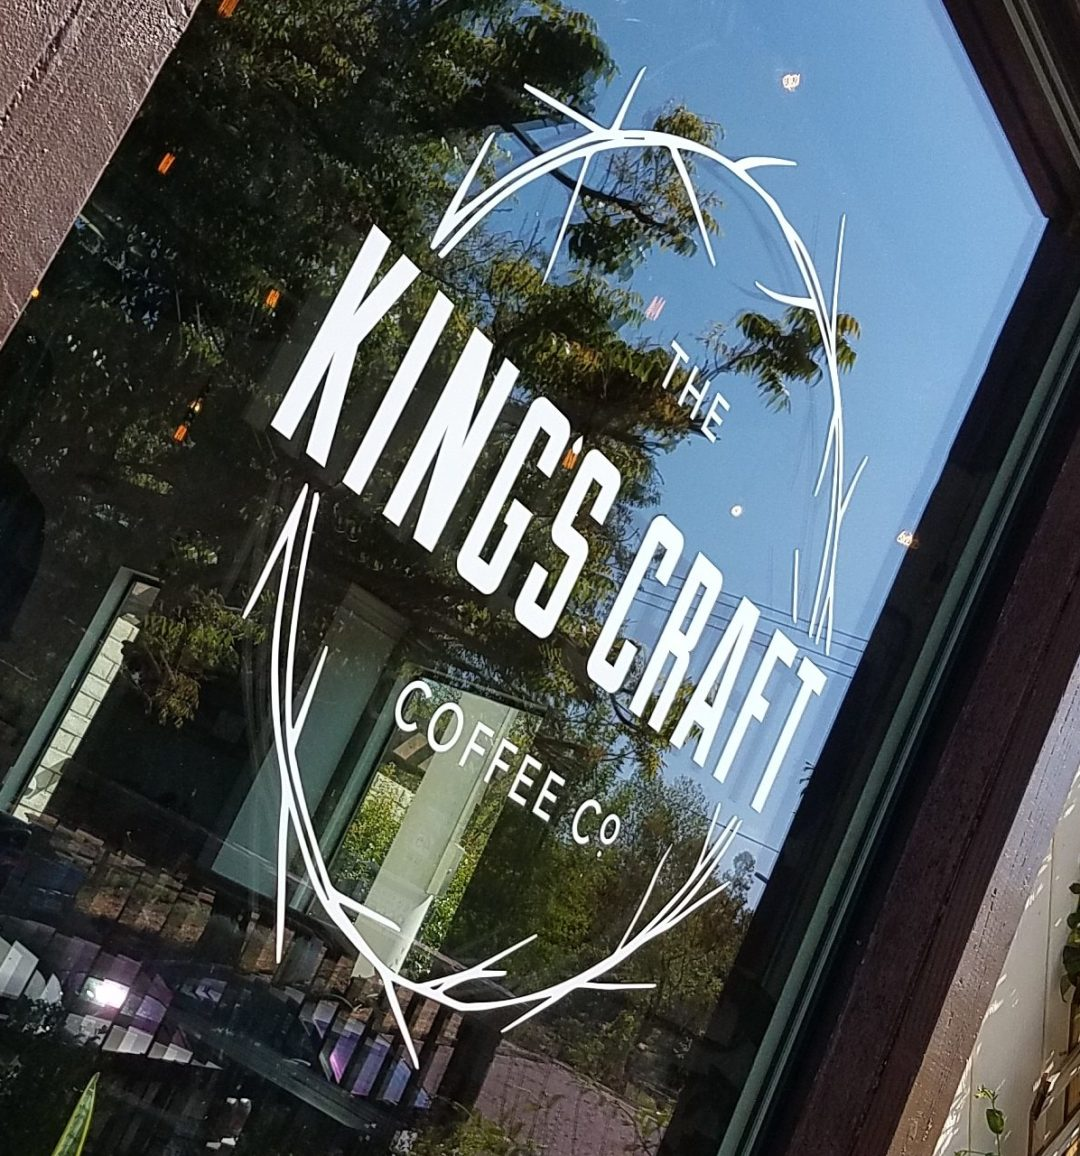 The King's Craft Coffee